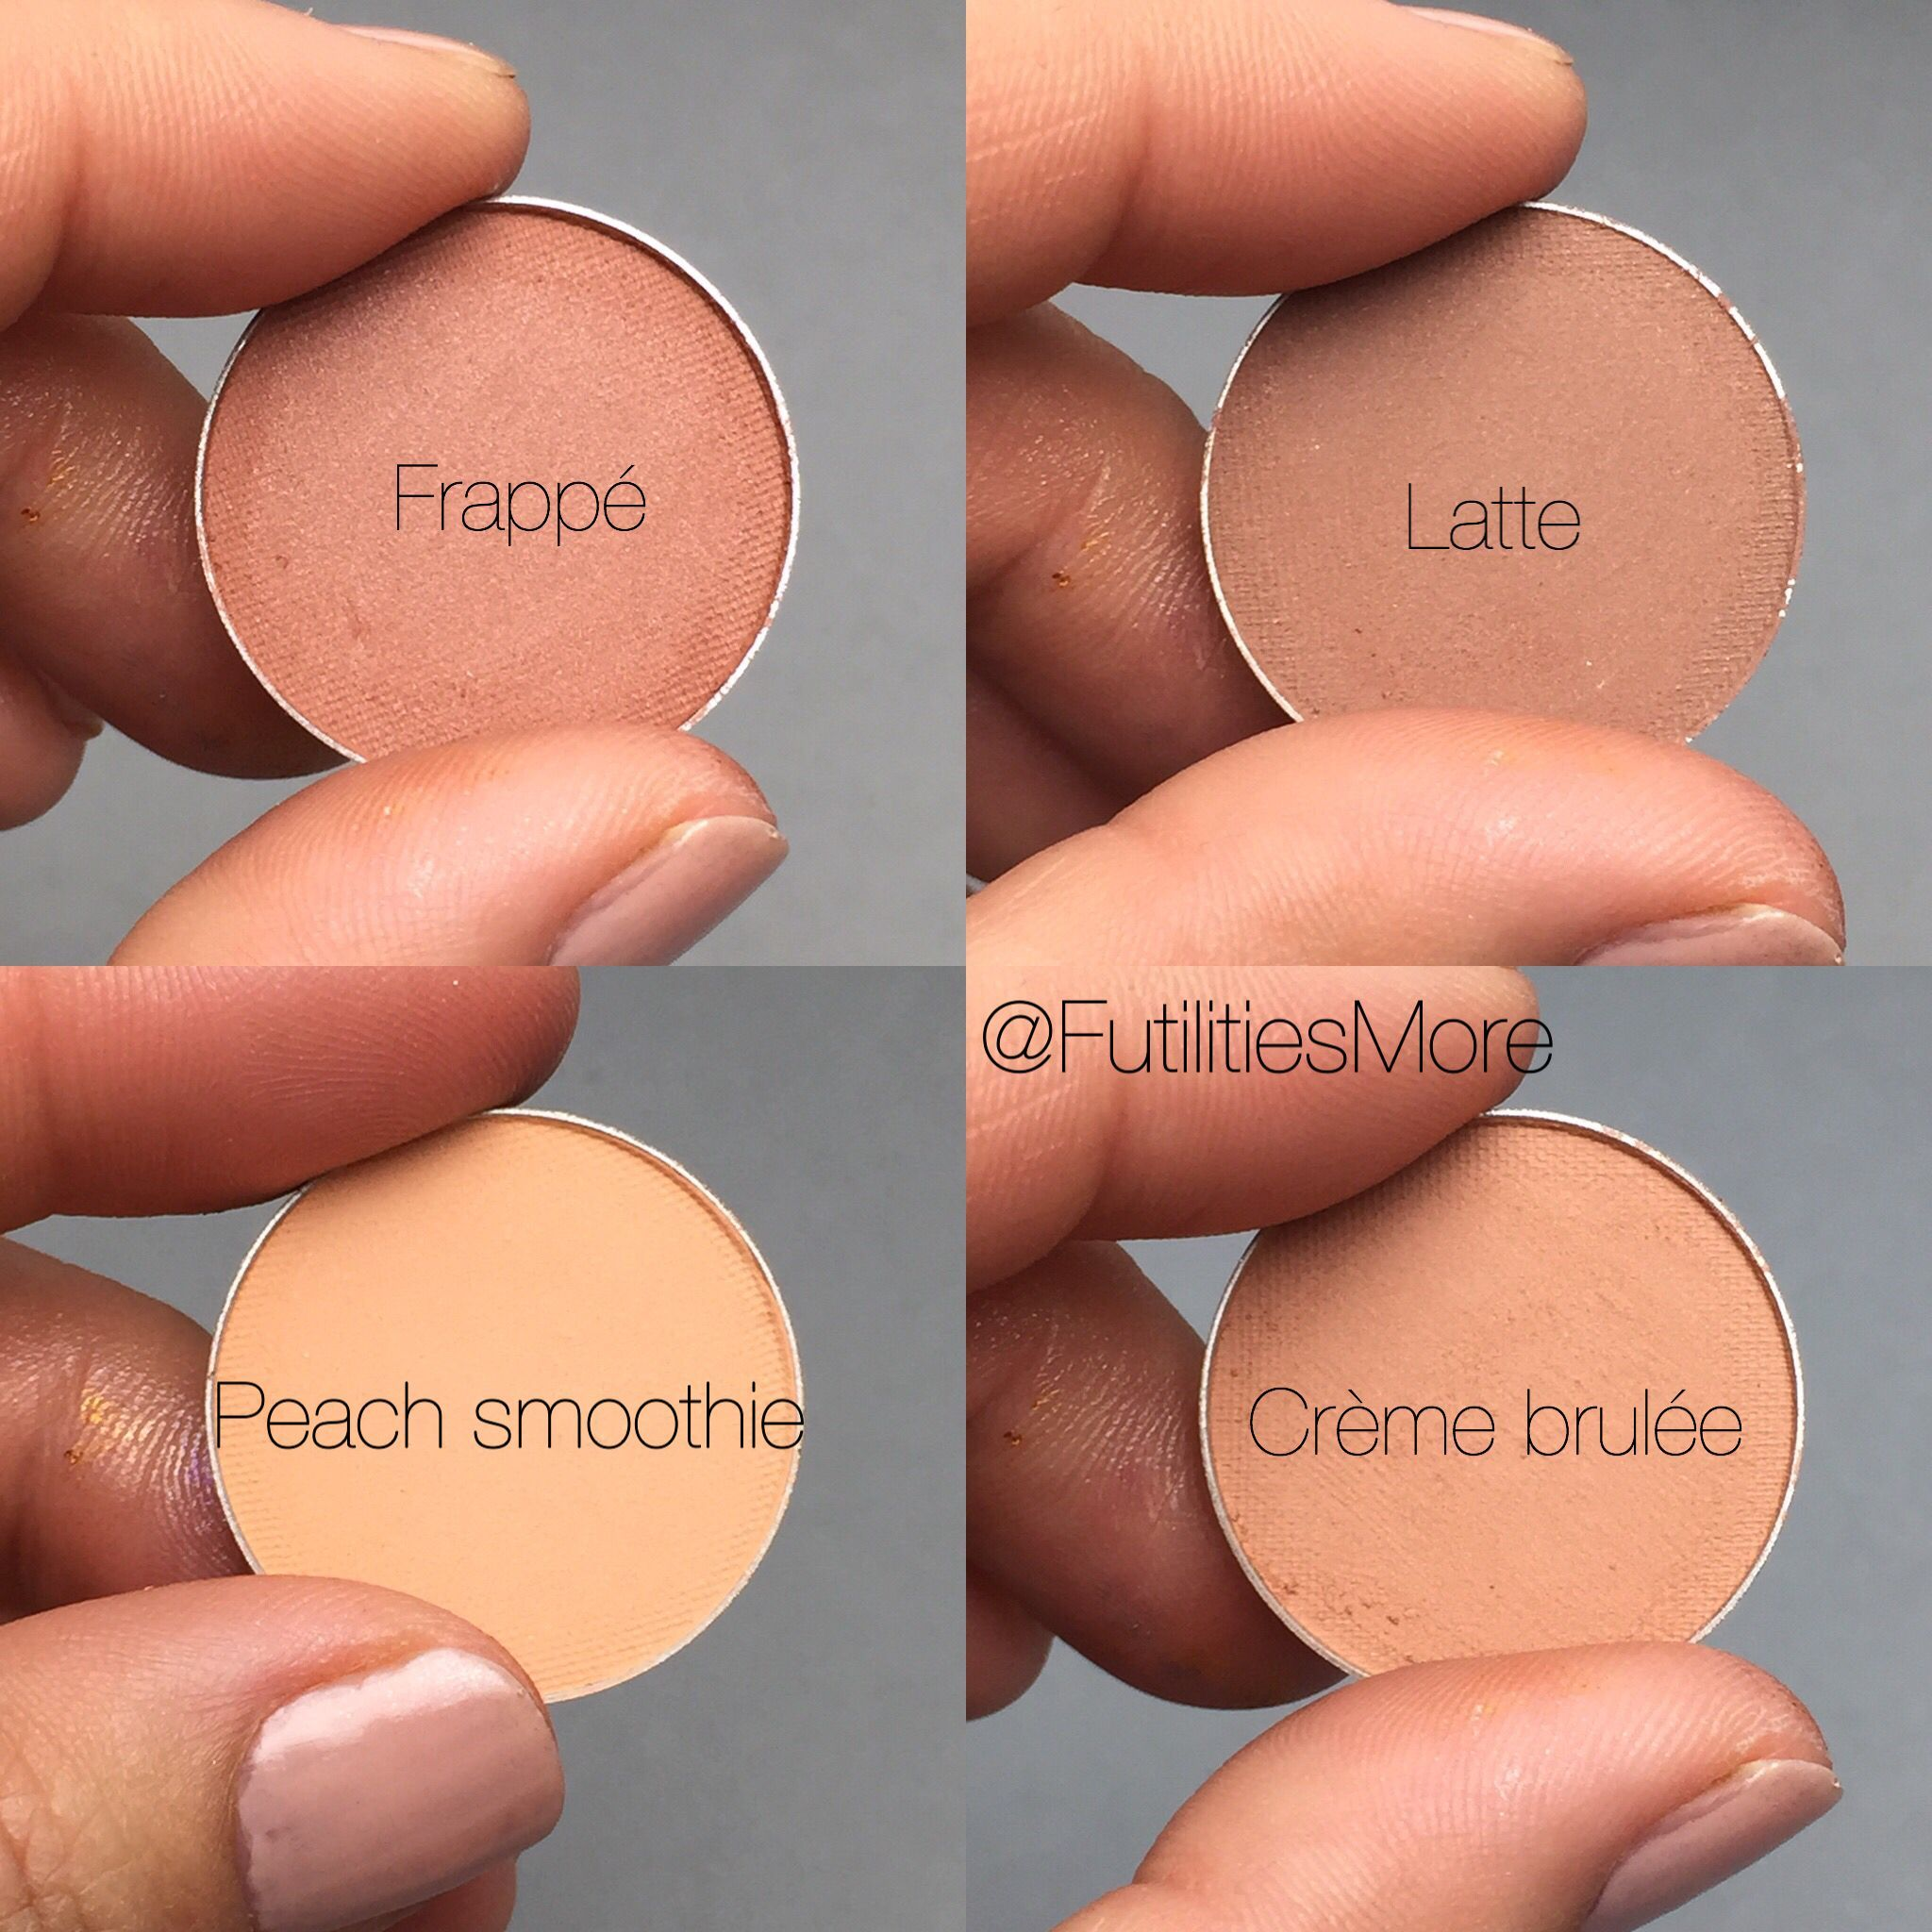 Image Result For Makeup Geek Creme Brulee Makeup Geek Eyeshadow Makeup Geek Makeup Geek Peach Smoothie